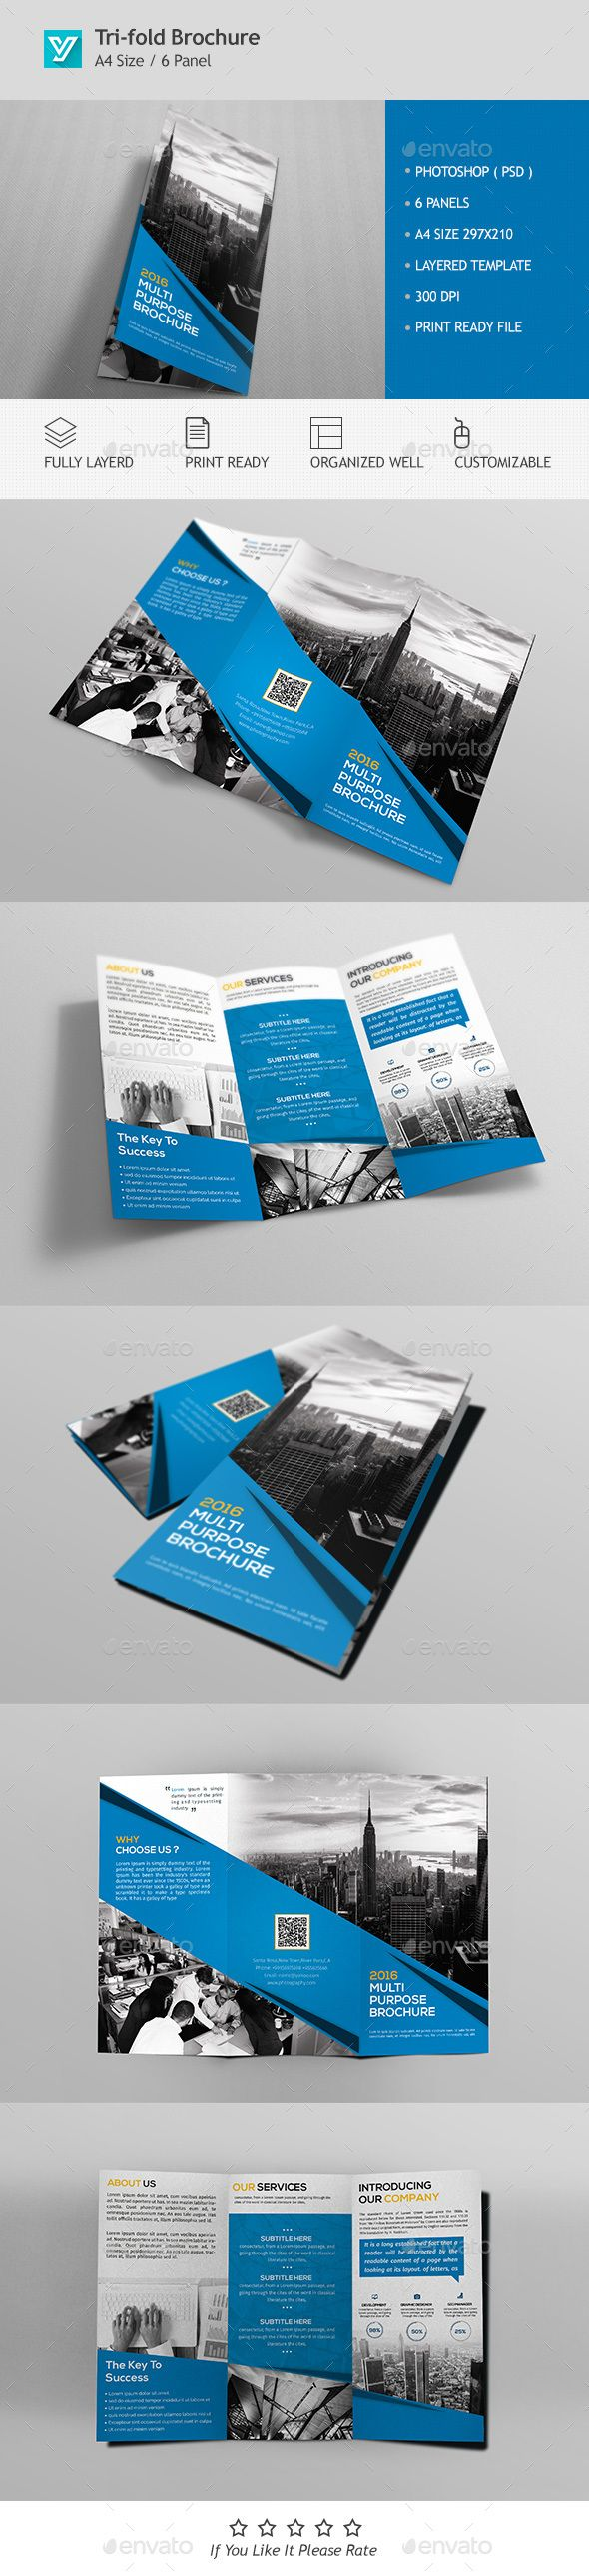 resignations letters templates%0A brochure design template